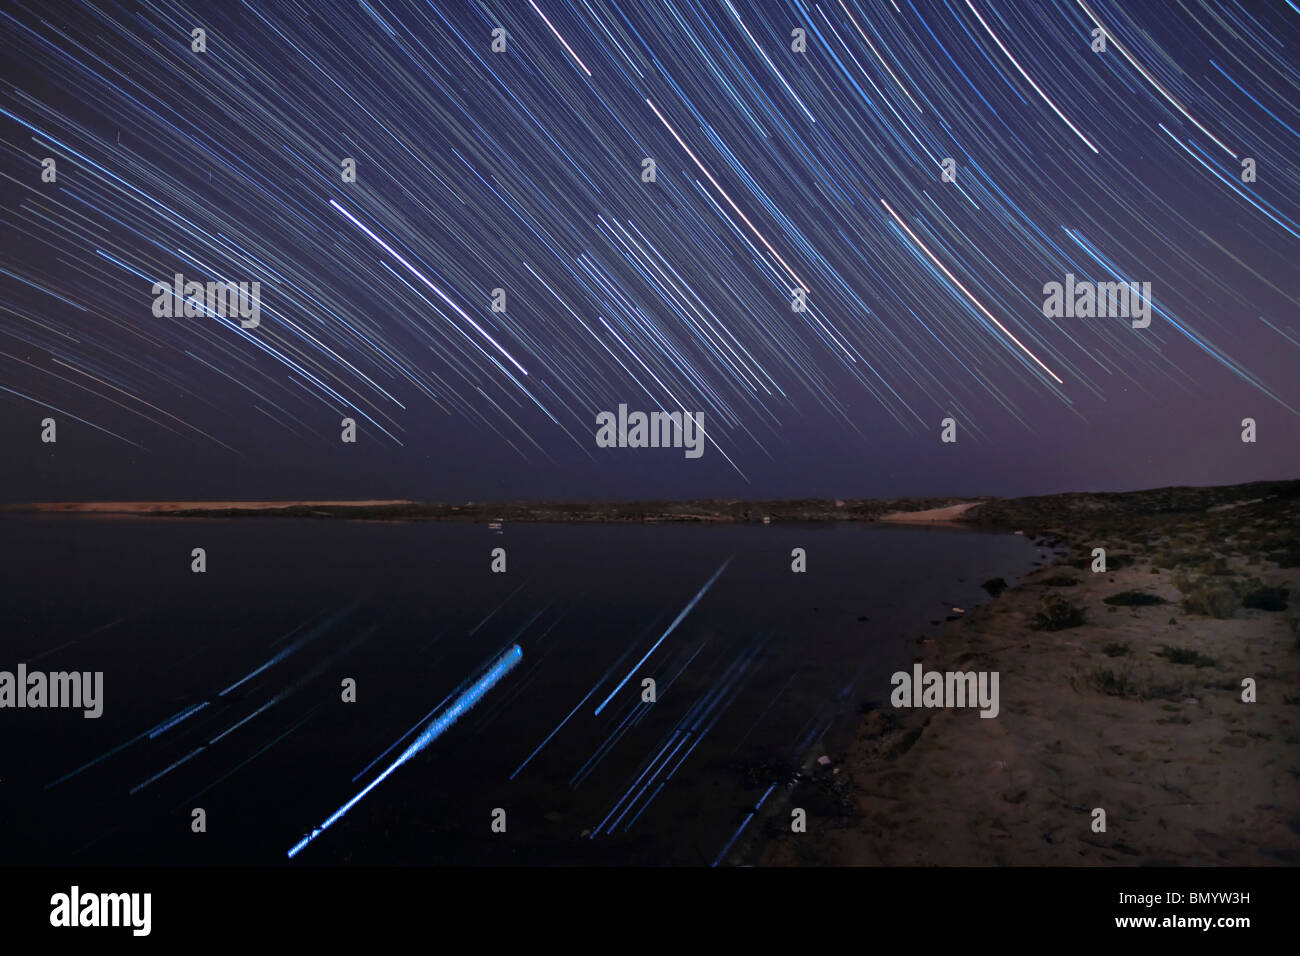 Star trails in the Albufeira Lagoon, Portugal. - Stock Image